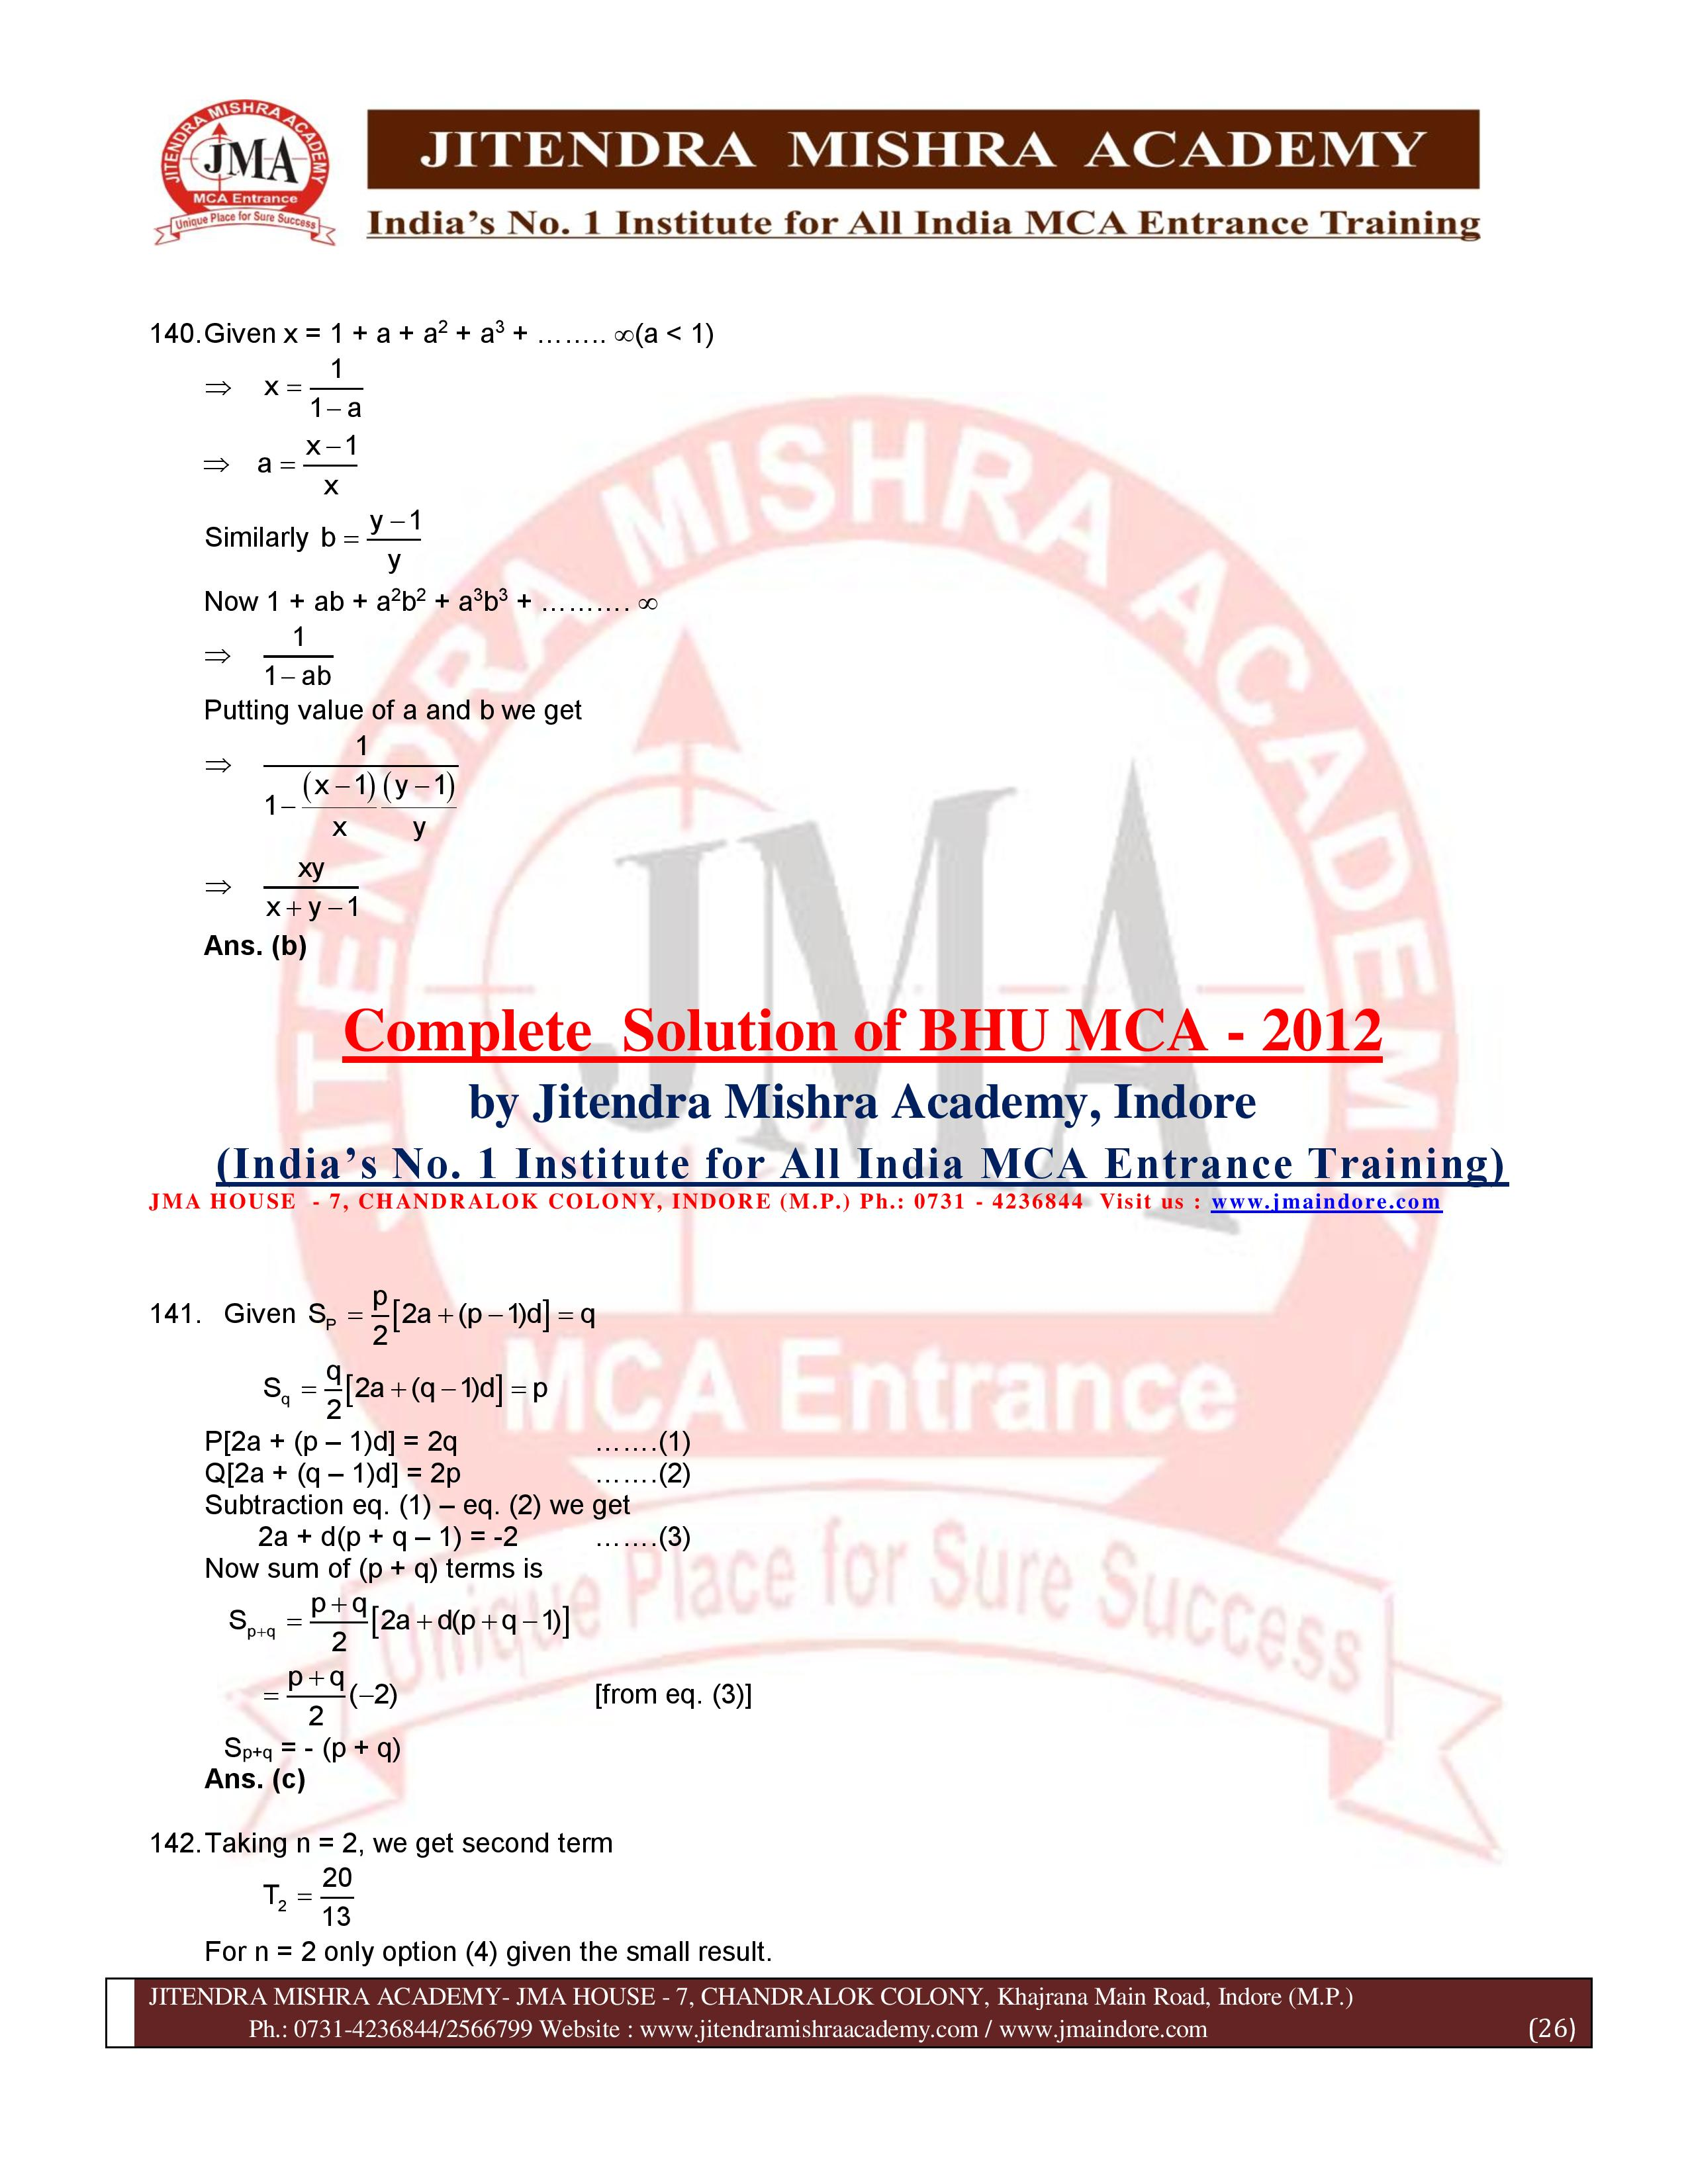 BHU 2012 SOLUTION (SET - 2) (07.07.16)-page-026